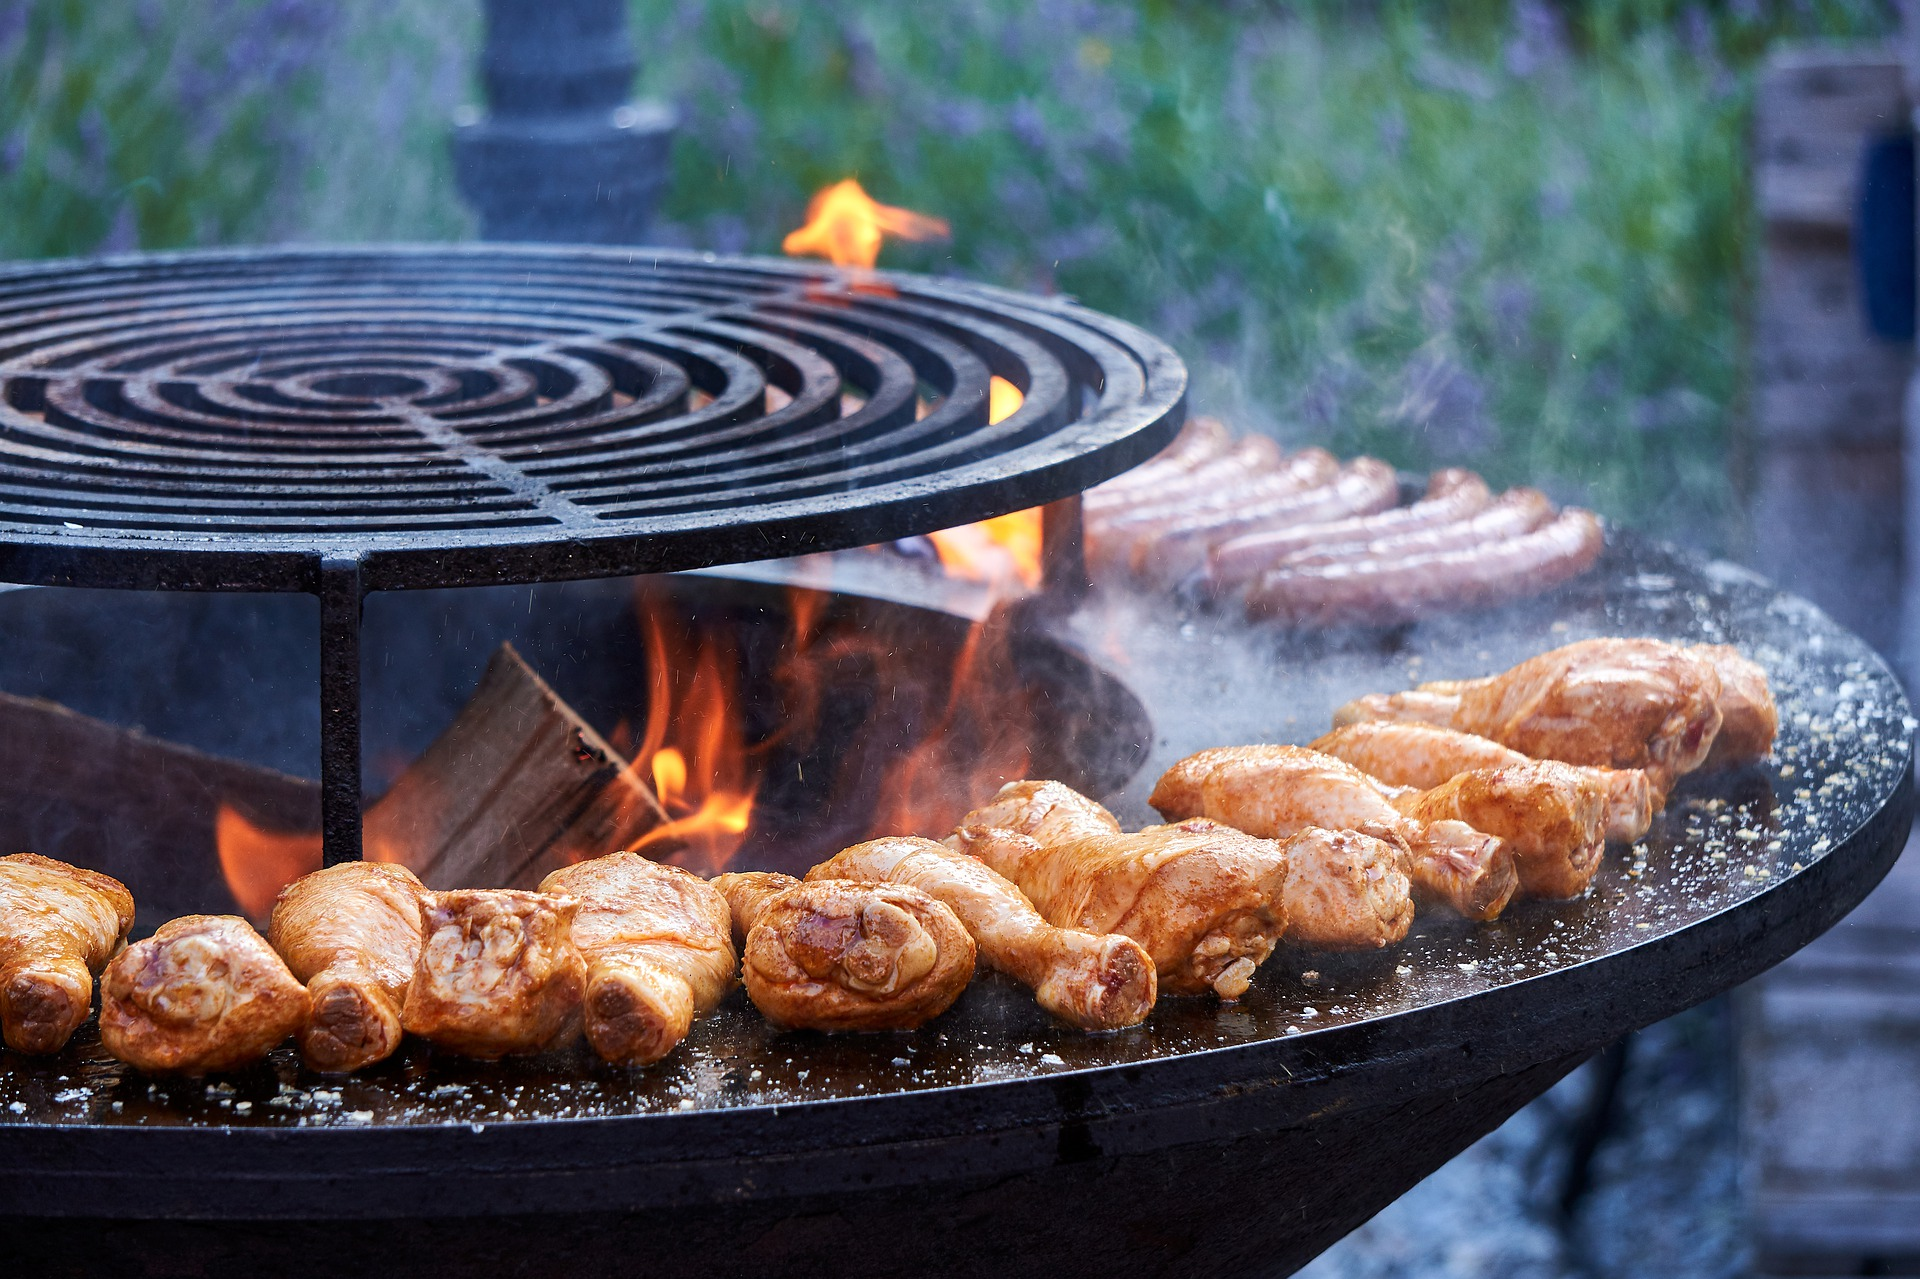 Aussengrill Outdoor Barbecue Grill